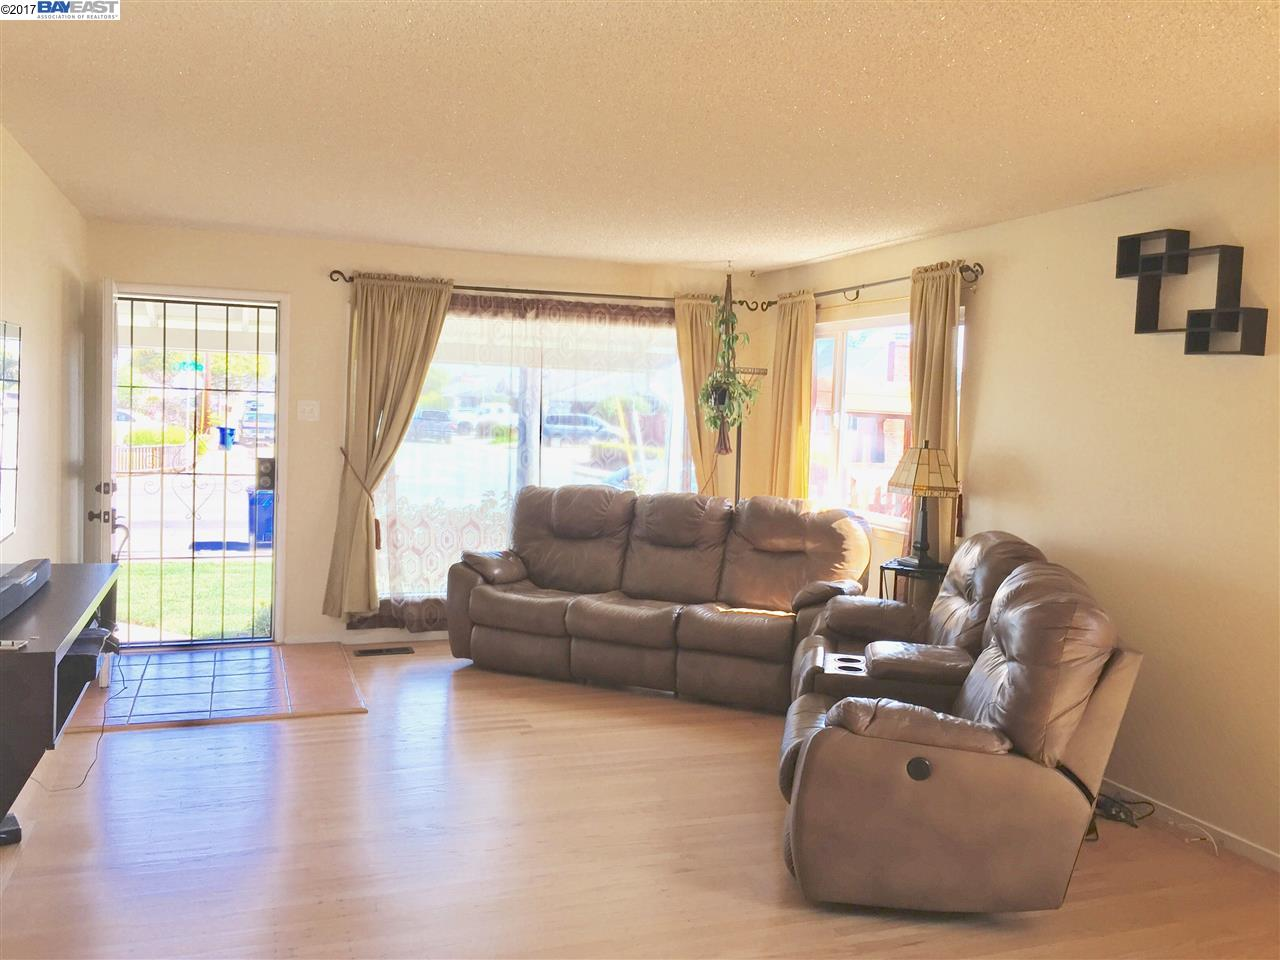 Additional photo for property listing at 1593 Cedar Avenue  San Leandro, Kalifornien 94579 Vereinigte Staaten